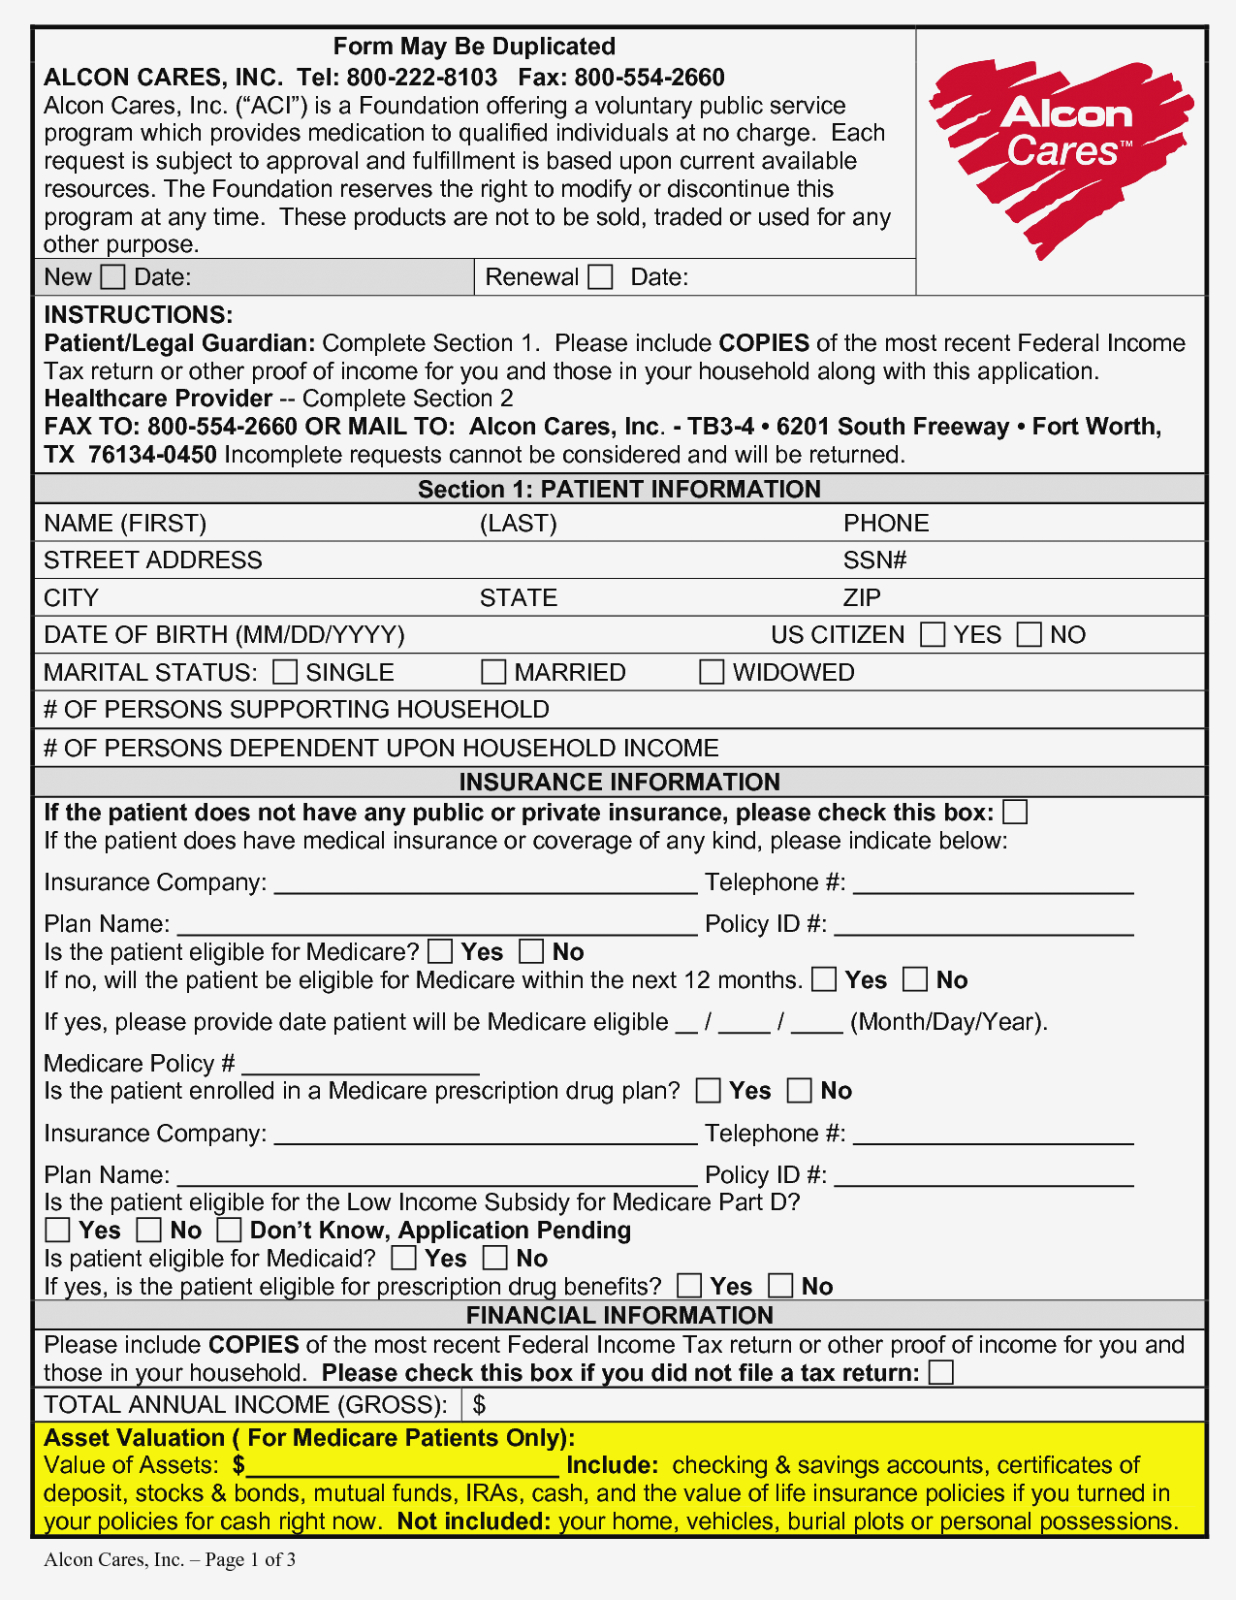 Florida Health Care Power Of Attorney Forms Lovely Form Power - Free Printable Medical Power Of Attorney Forms